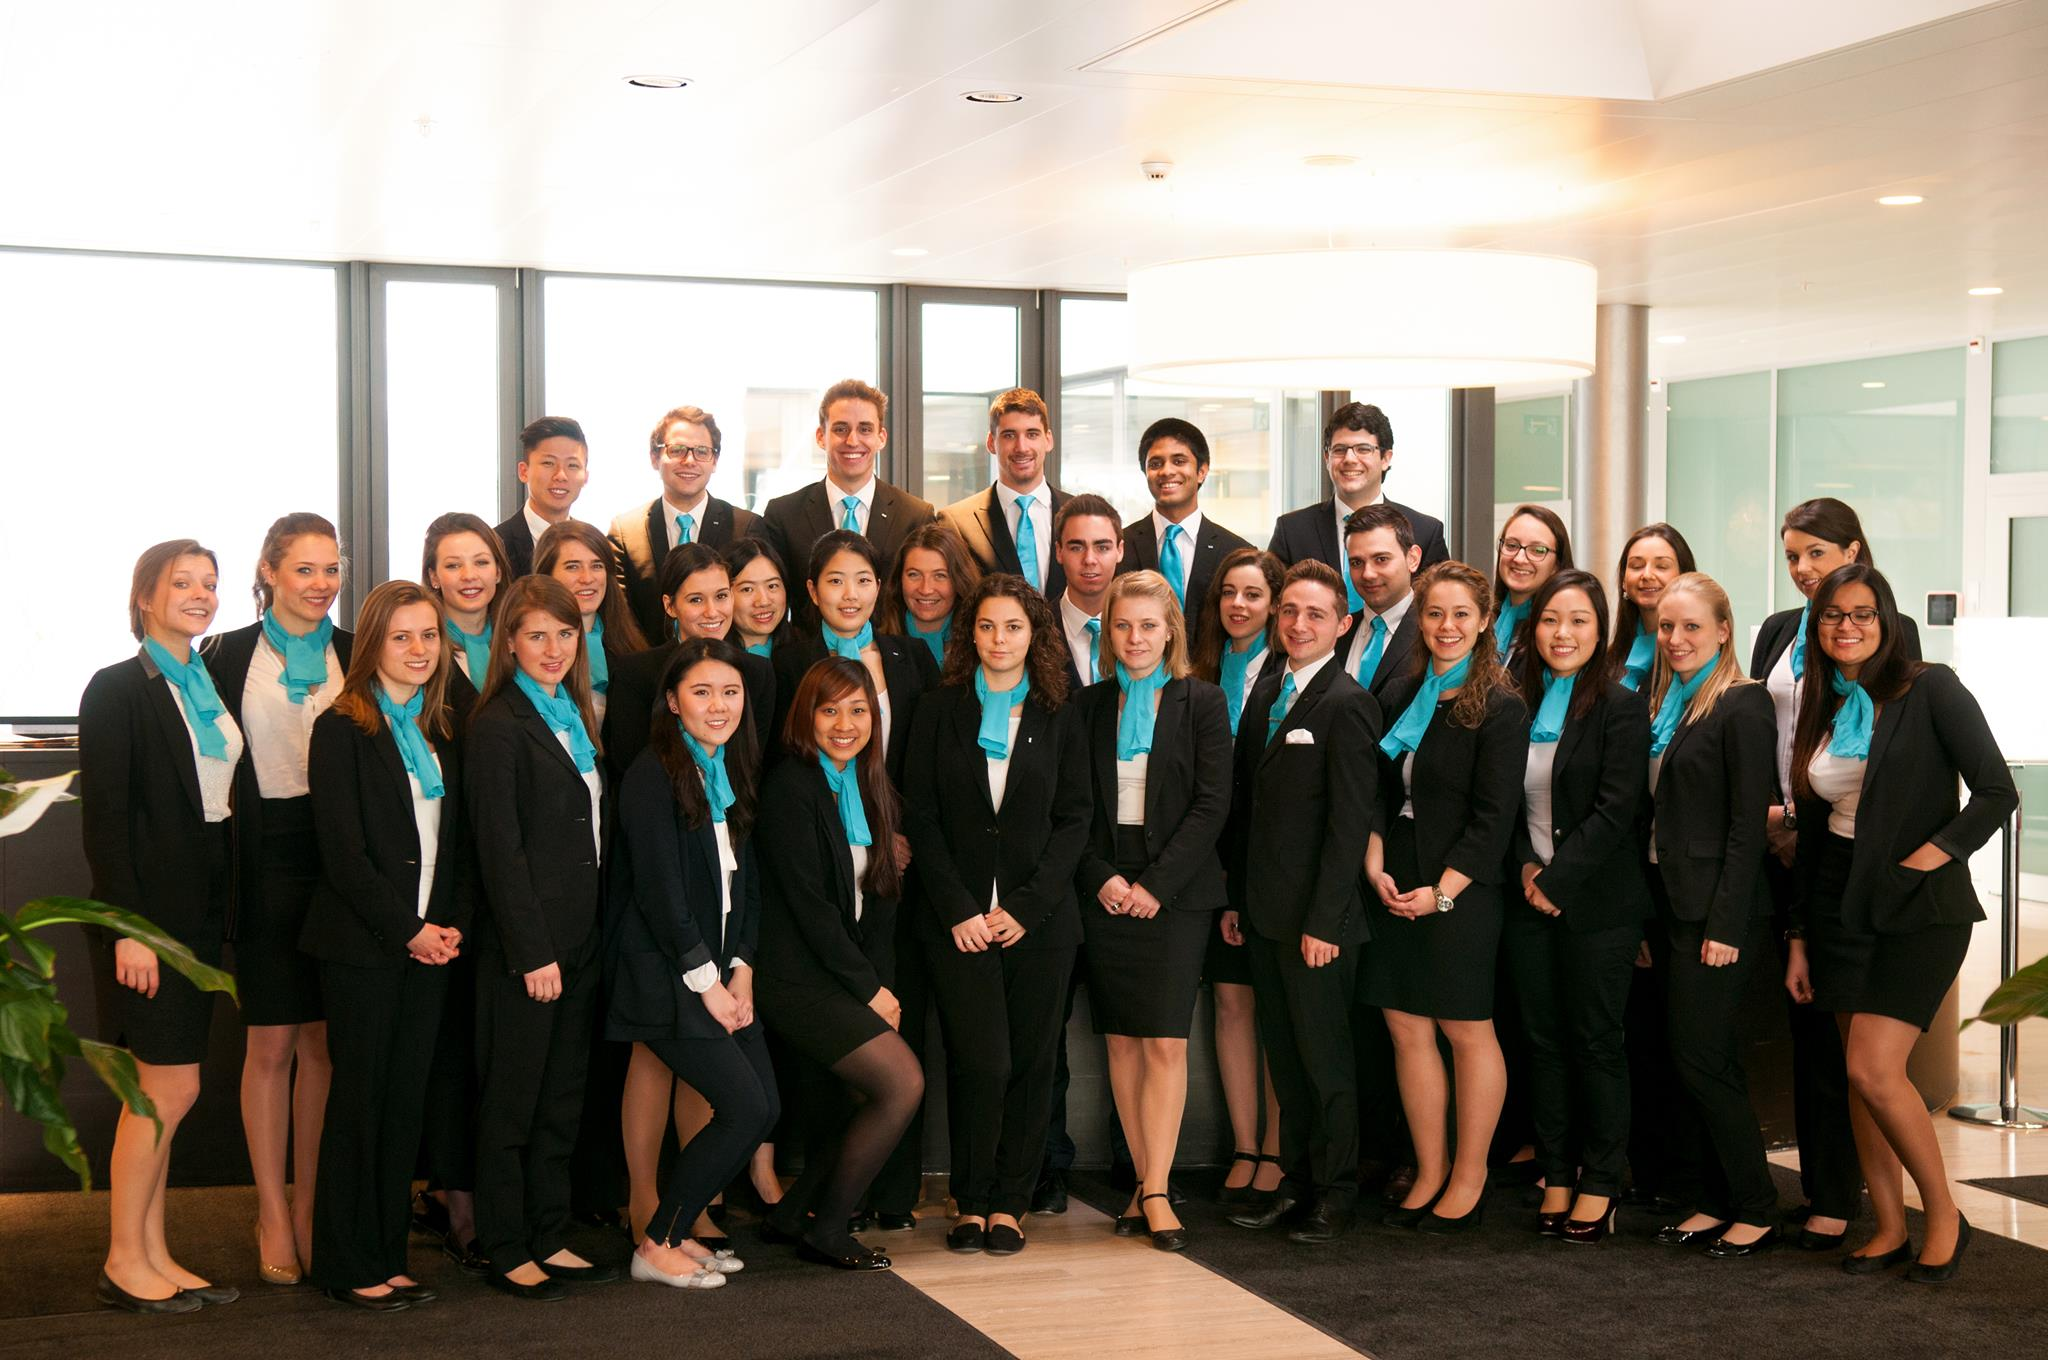 Young Hoteliers Summit 6th Edition - 6 Days to go!